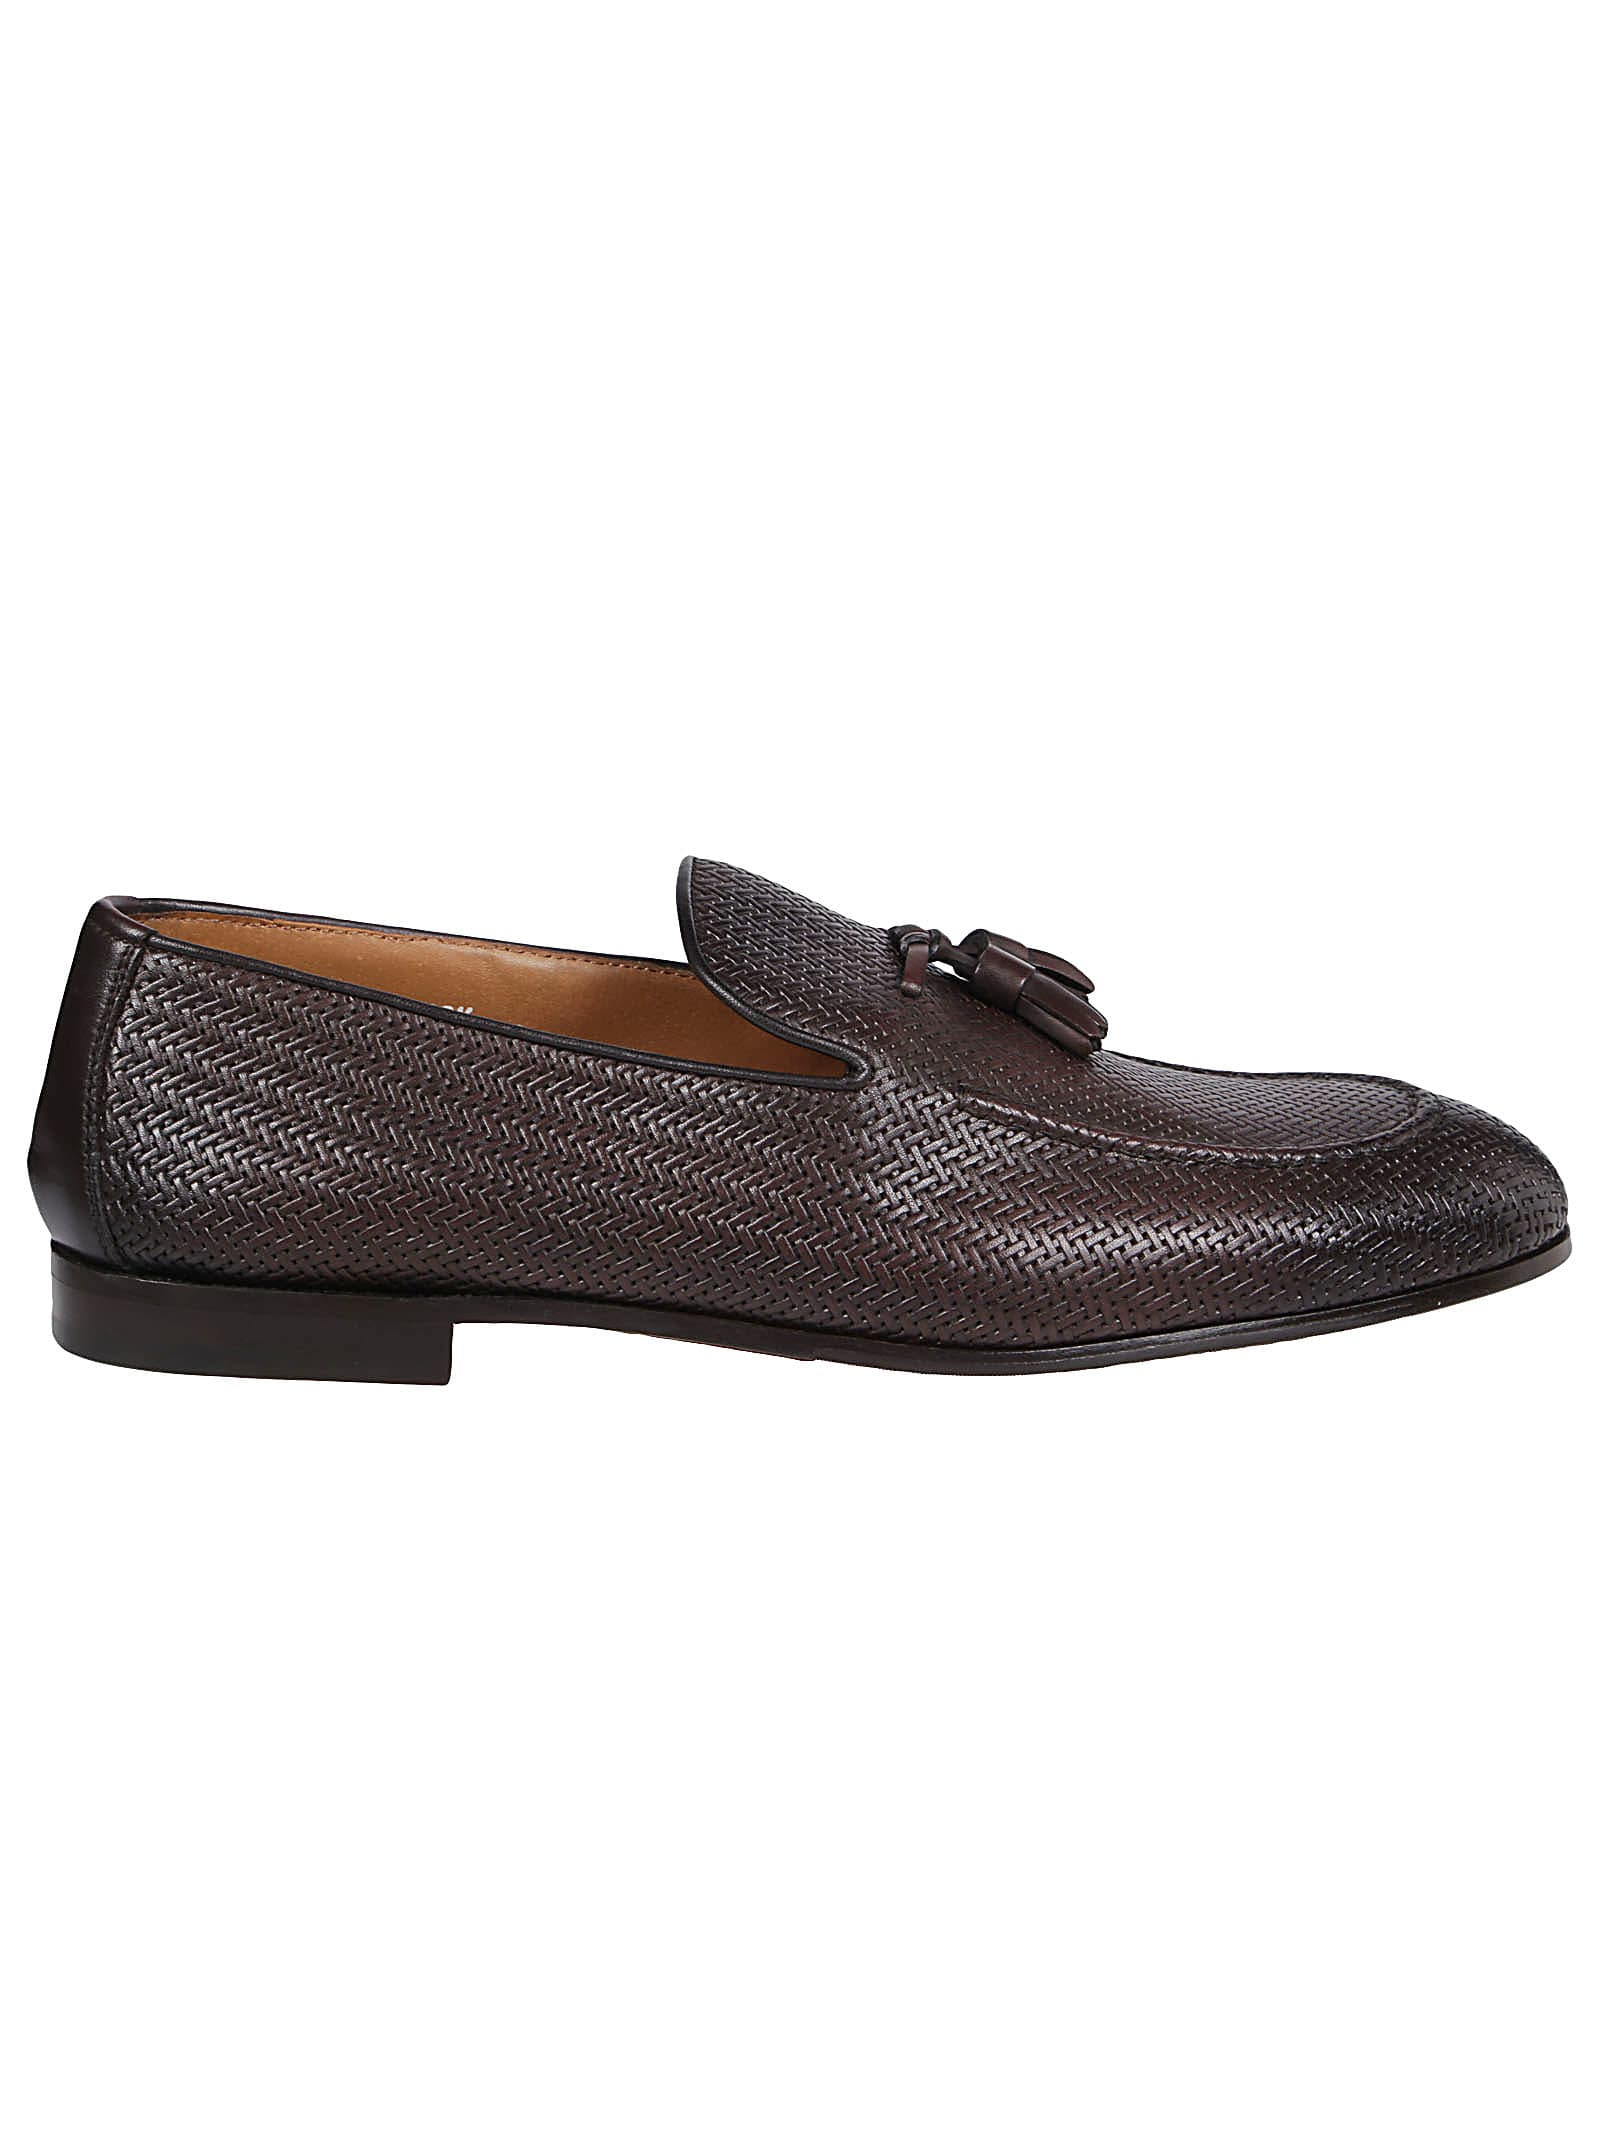 Doucals Loafers Tassel